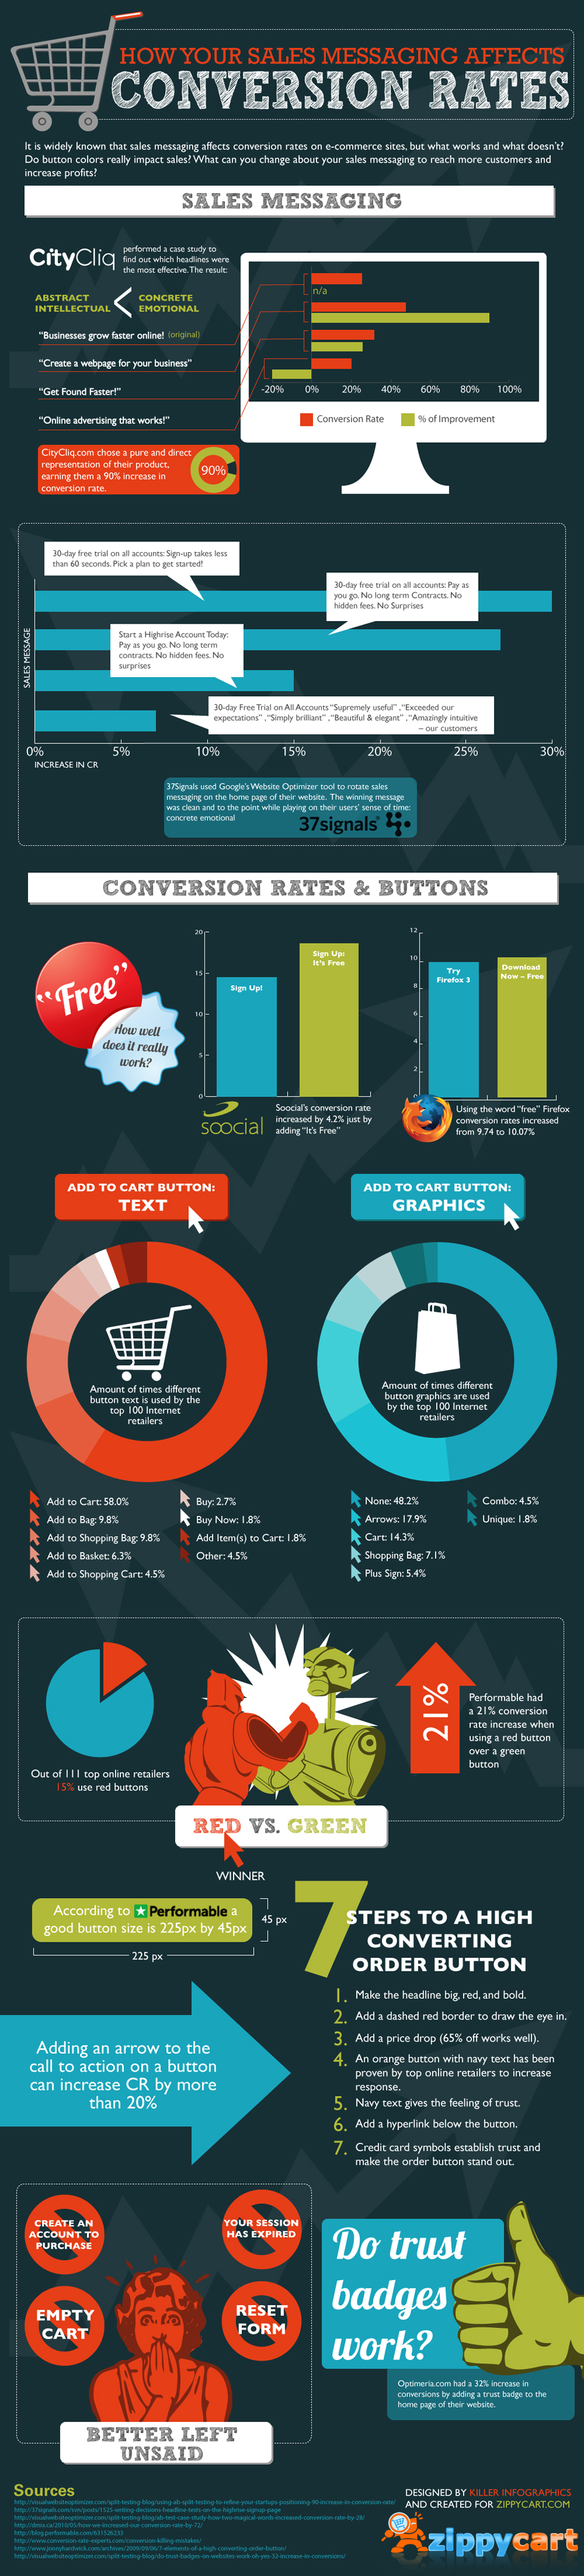 conversion rate infographic